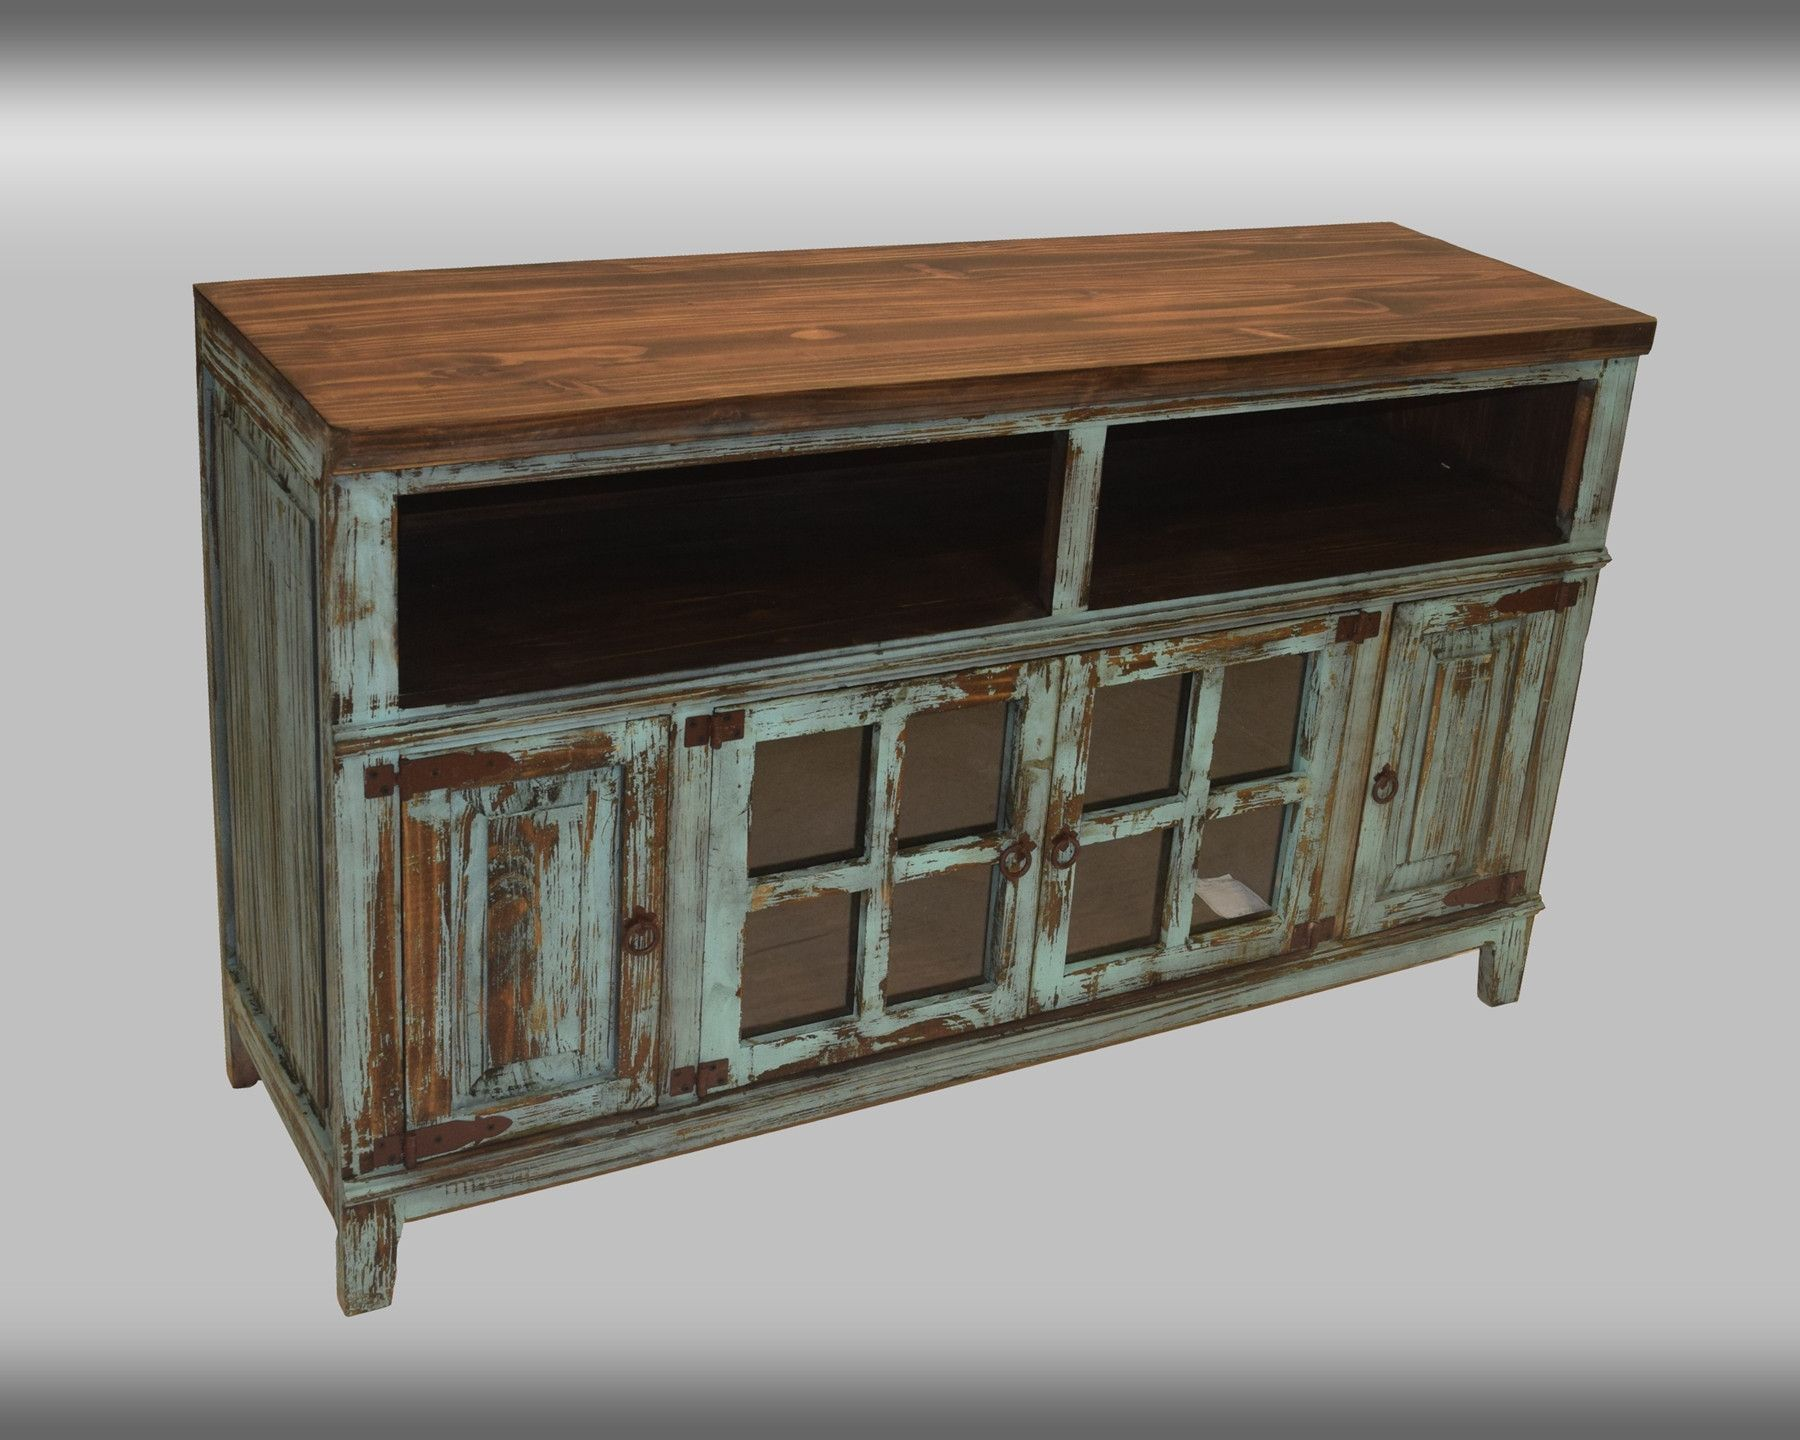 Rustic collection tv console antique black natural red rustic collection tv console antique black natural red turquoise white use coupon code freeship17 for free shipping geotapseo Image collections